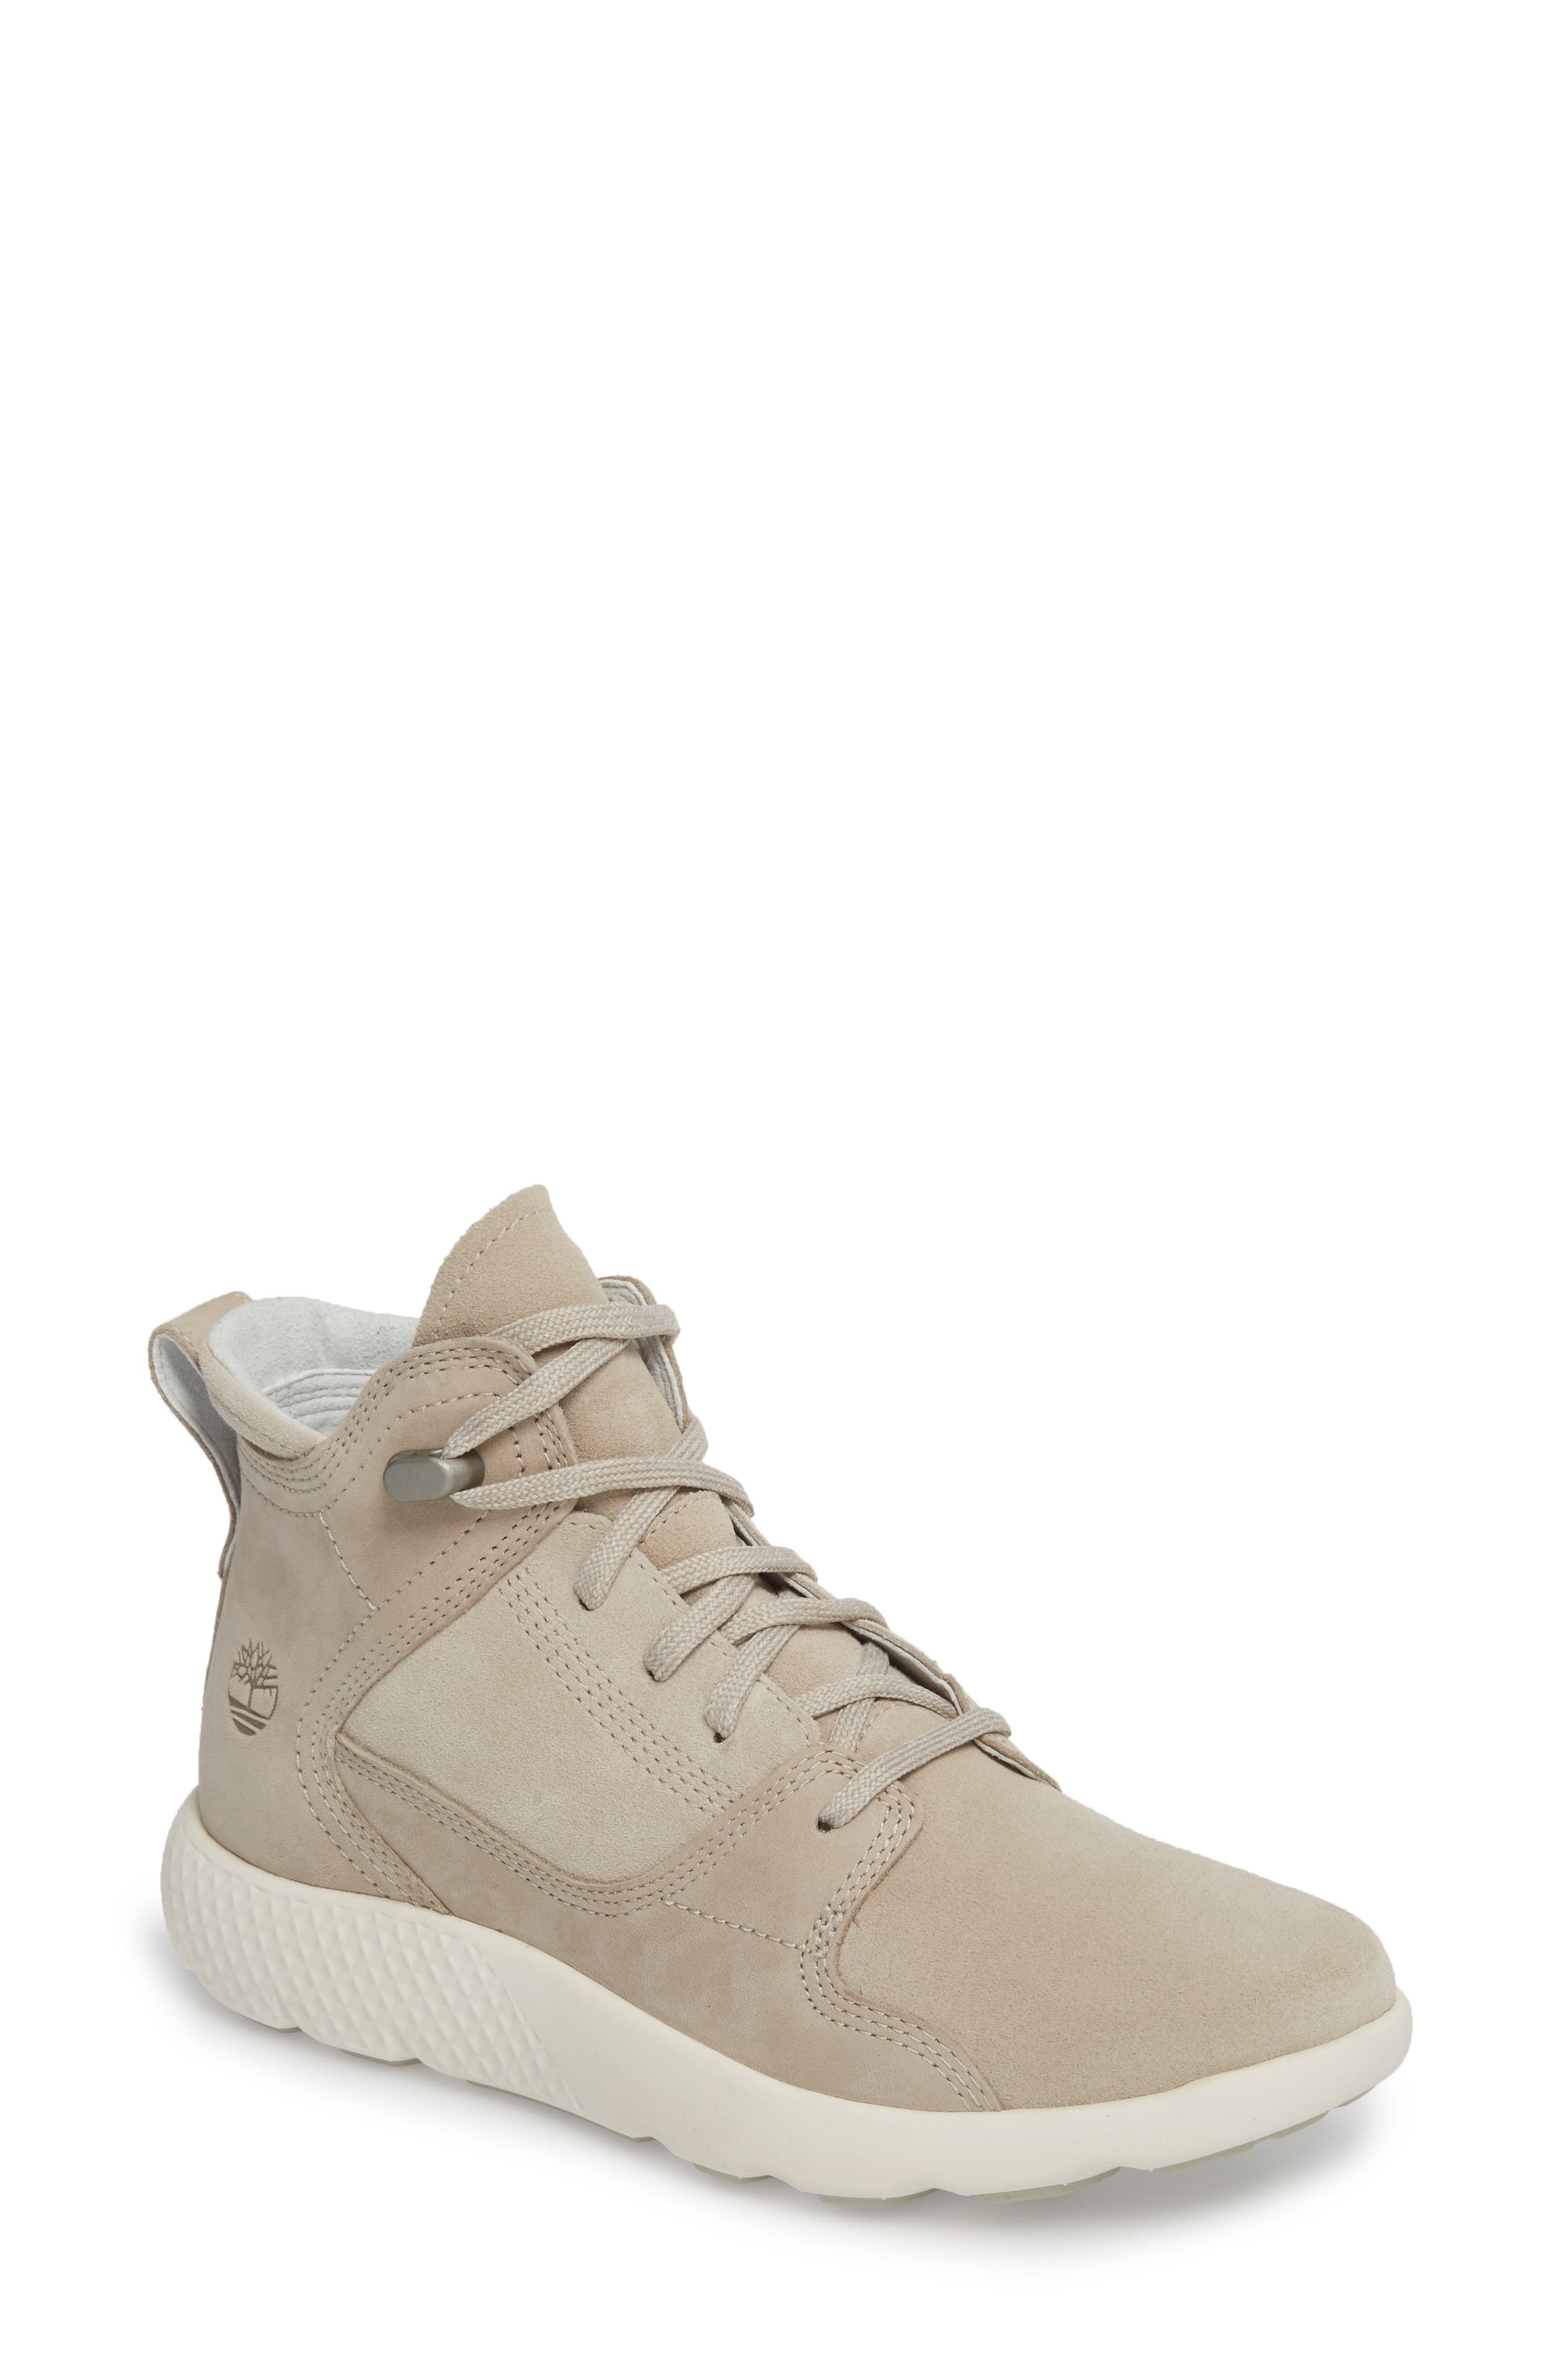 FlyRoam Sneaker,                         Main,                         color, Pure Cashmere Leather